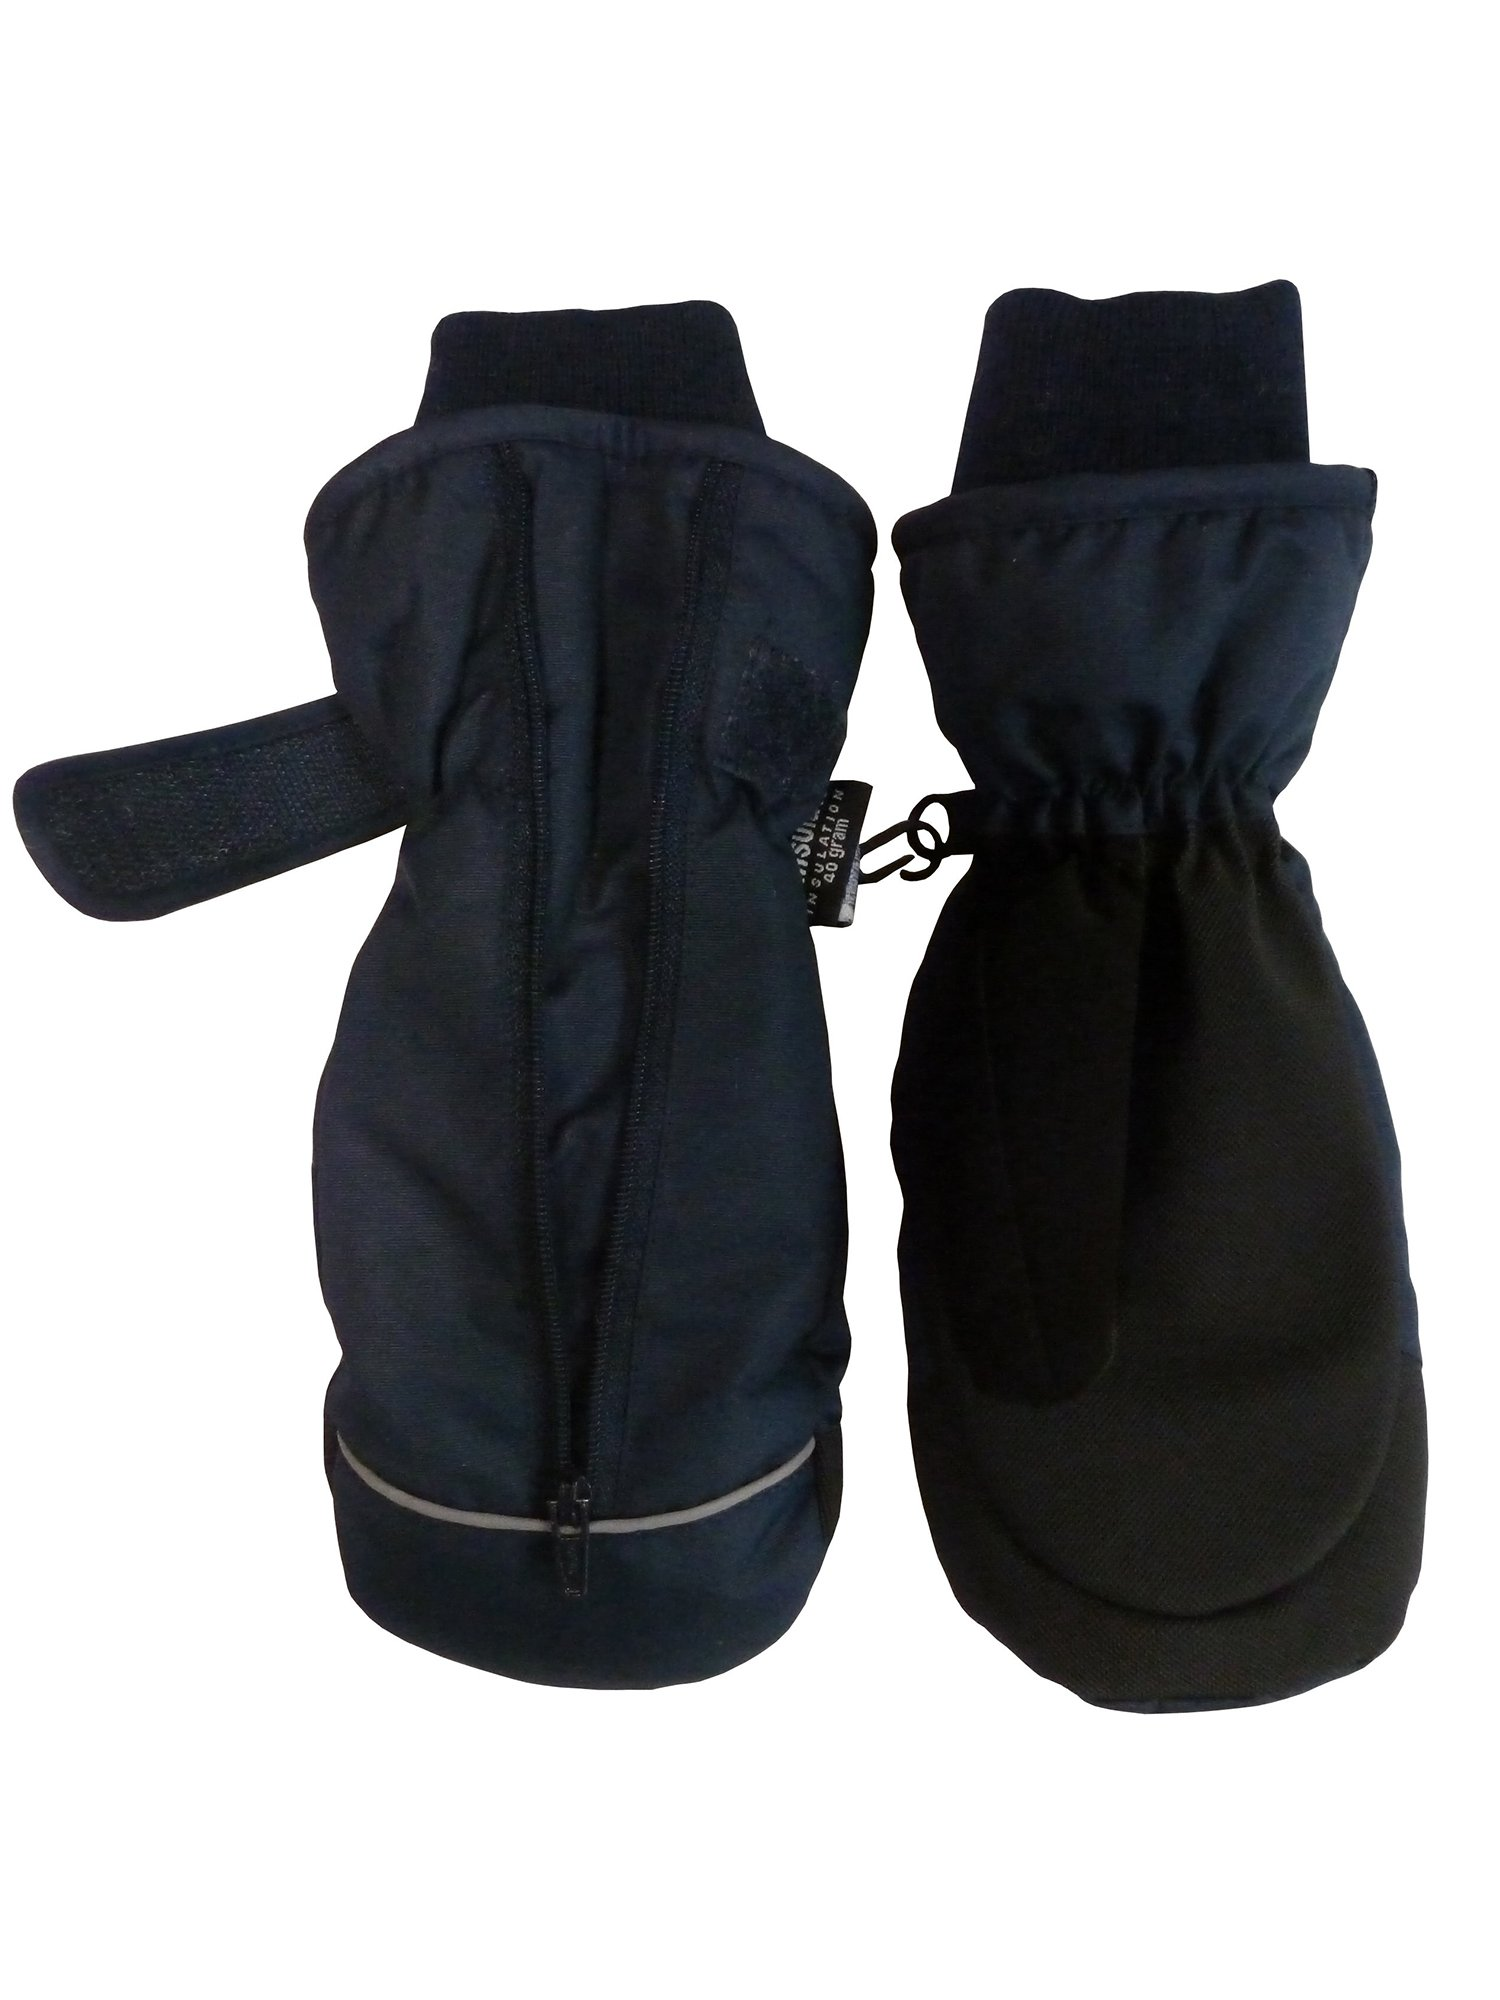 NICE CAPS Kids Waterproof and Thinsulate Insulated Easy On Zip-Up Snow Winter Ski Snowboarder Mittens - Fits Boys Girls Toddler Little Children Youth Child For Cold Weather Outdoors